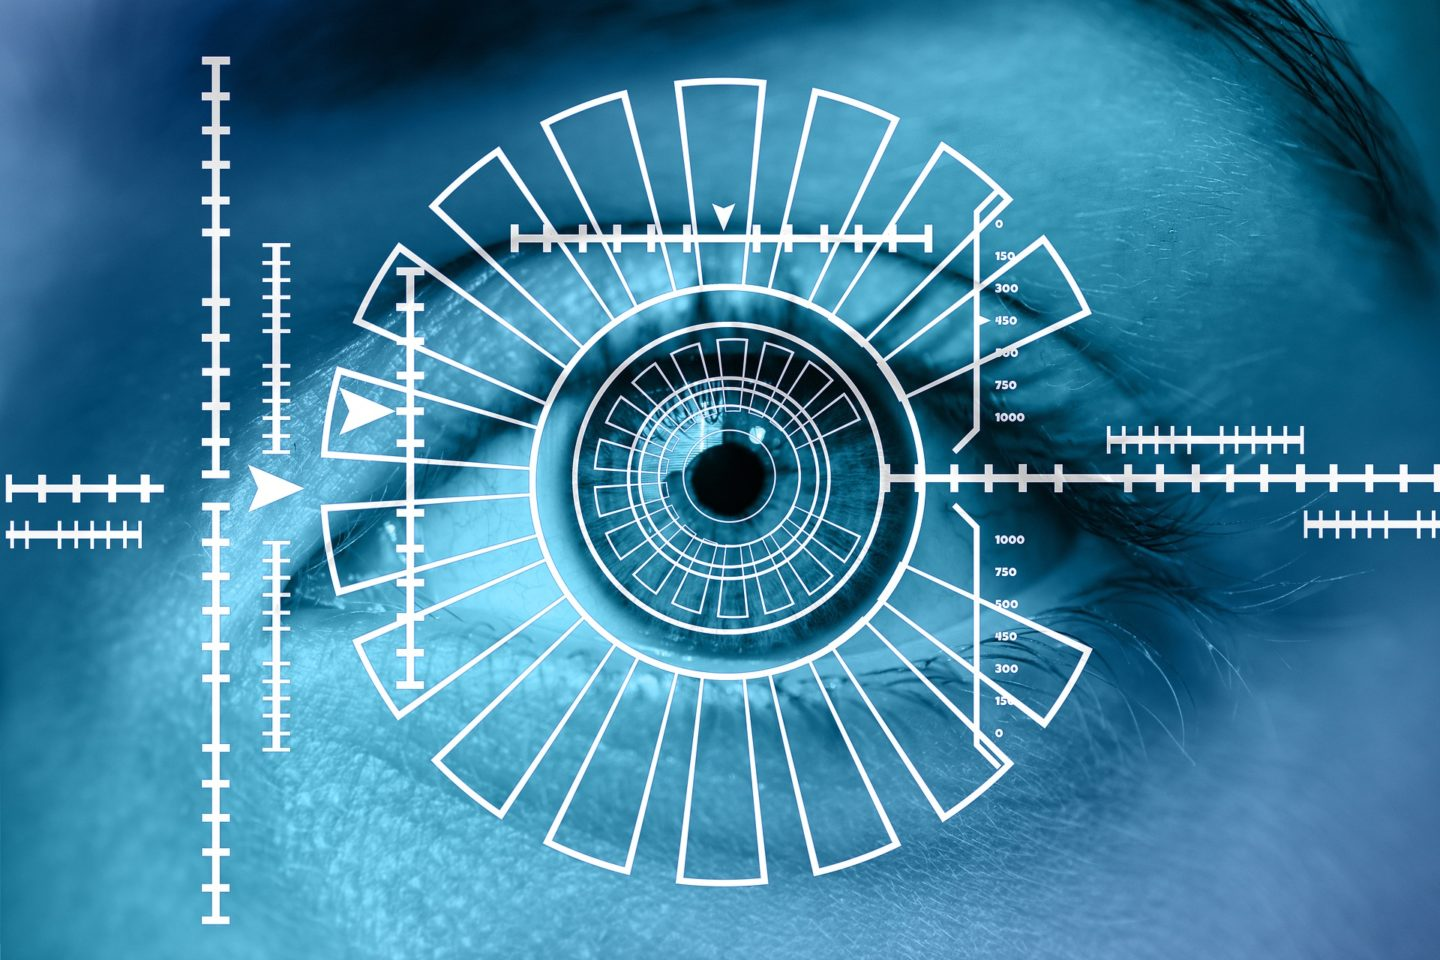 biometric scan of an eye